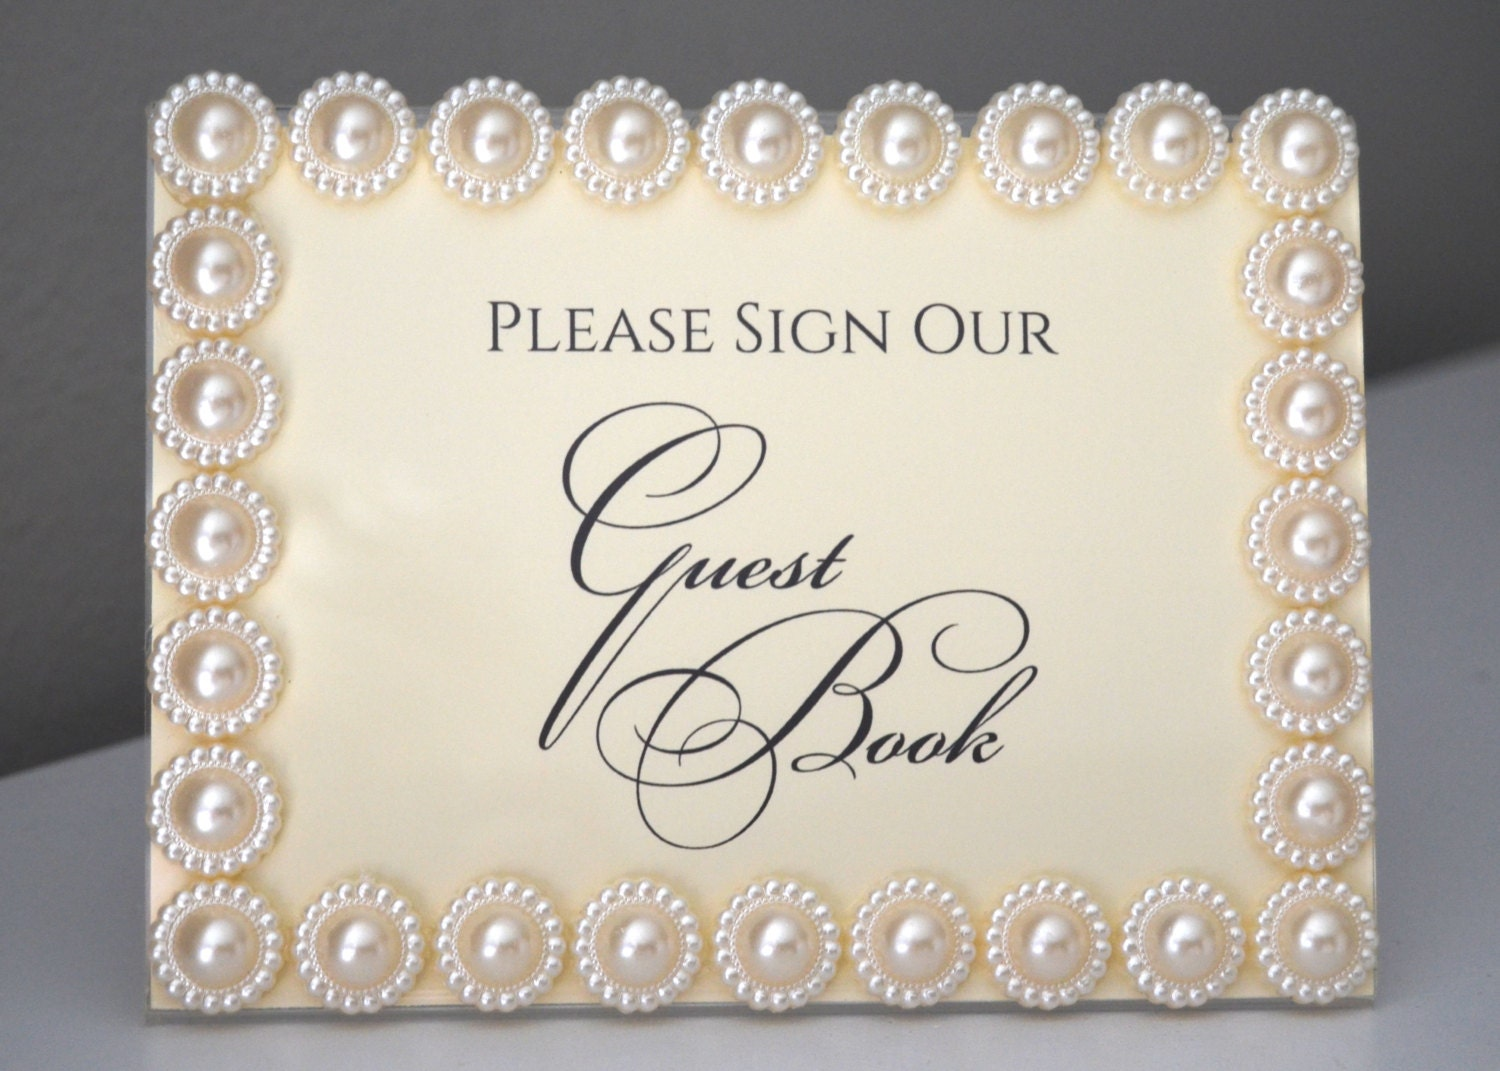 ivory pearl wedding frame with please sign our guest book or